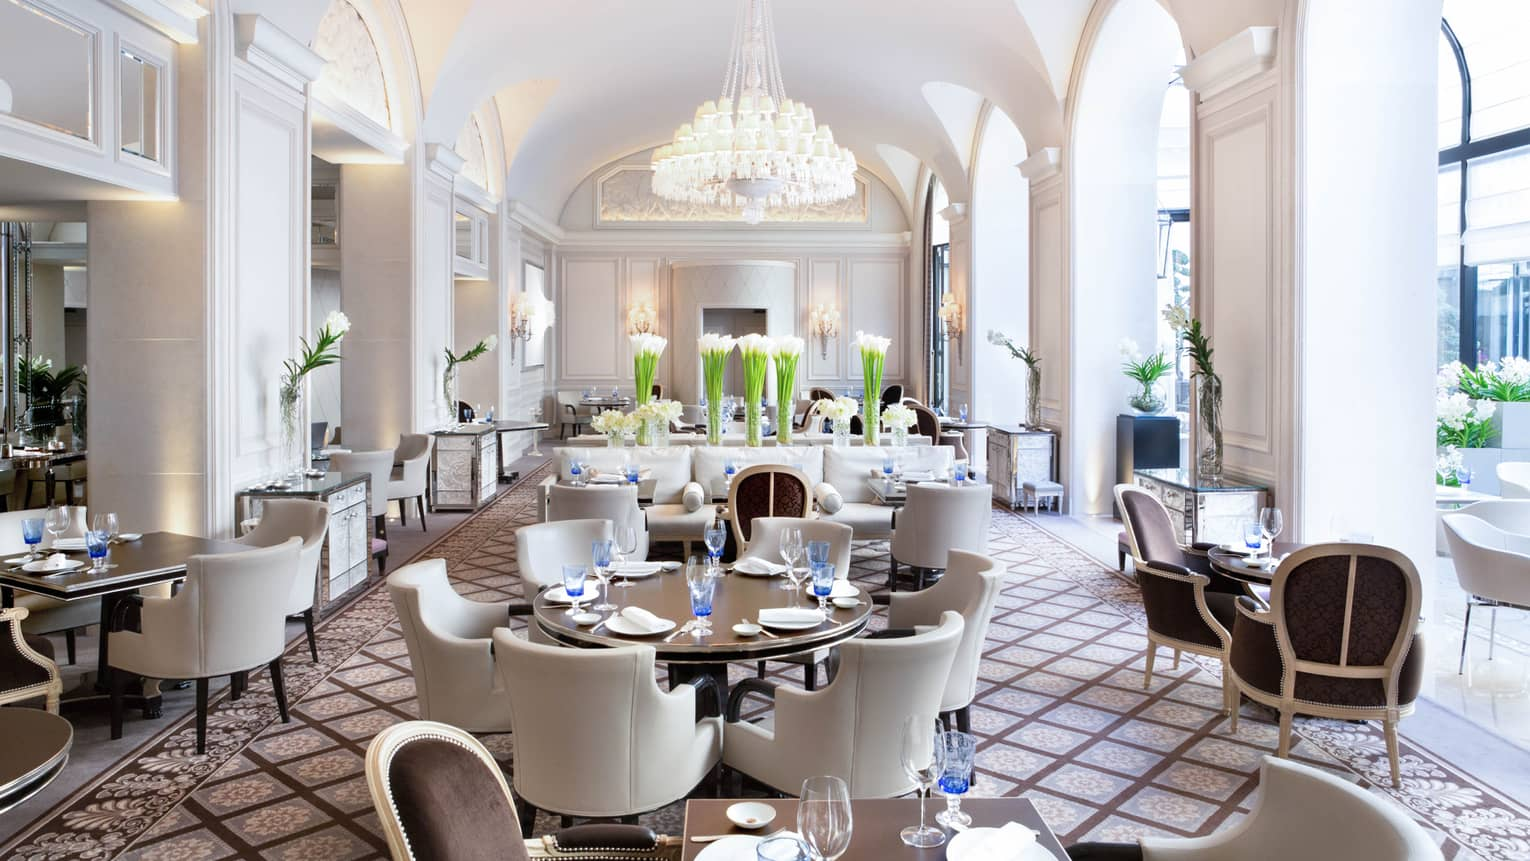 Bright Le George dining room, white chairs around tables under arched pillows, chandeliers